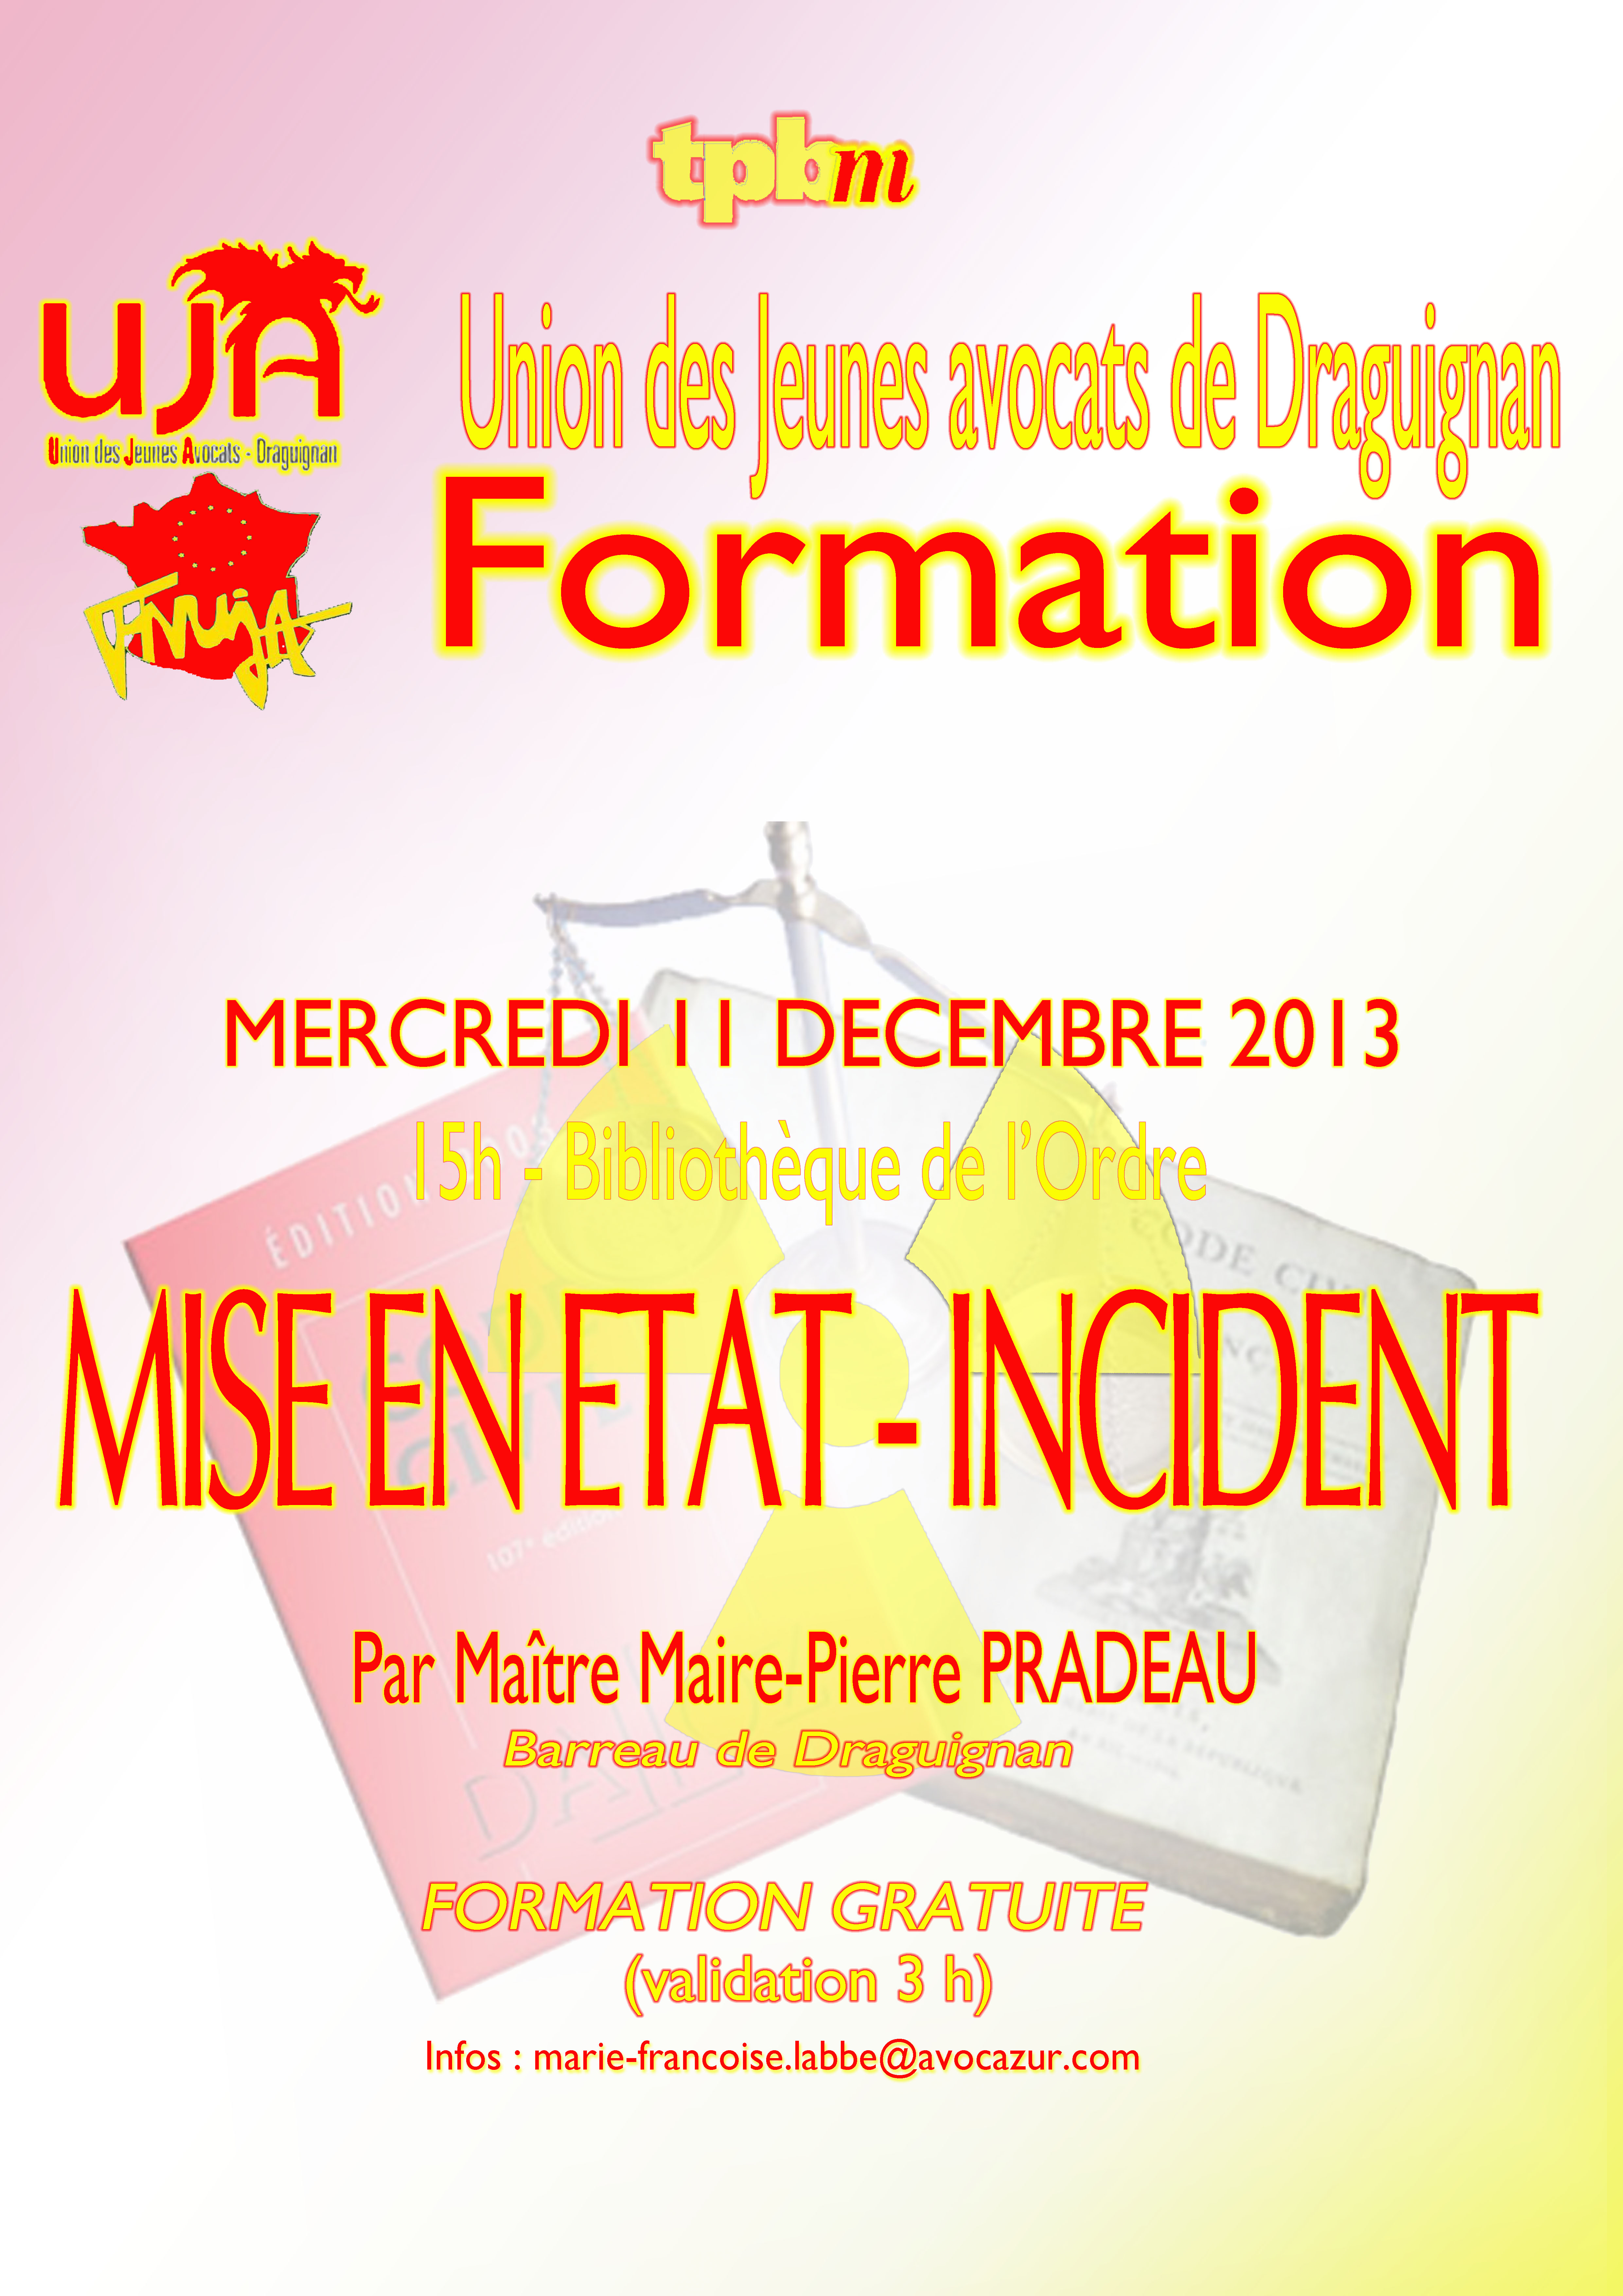 DRAGUIGNAN - Formation : Mise en Etat et incident